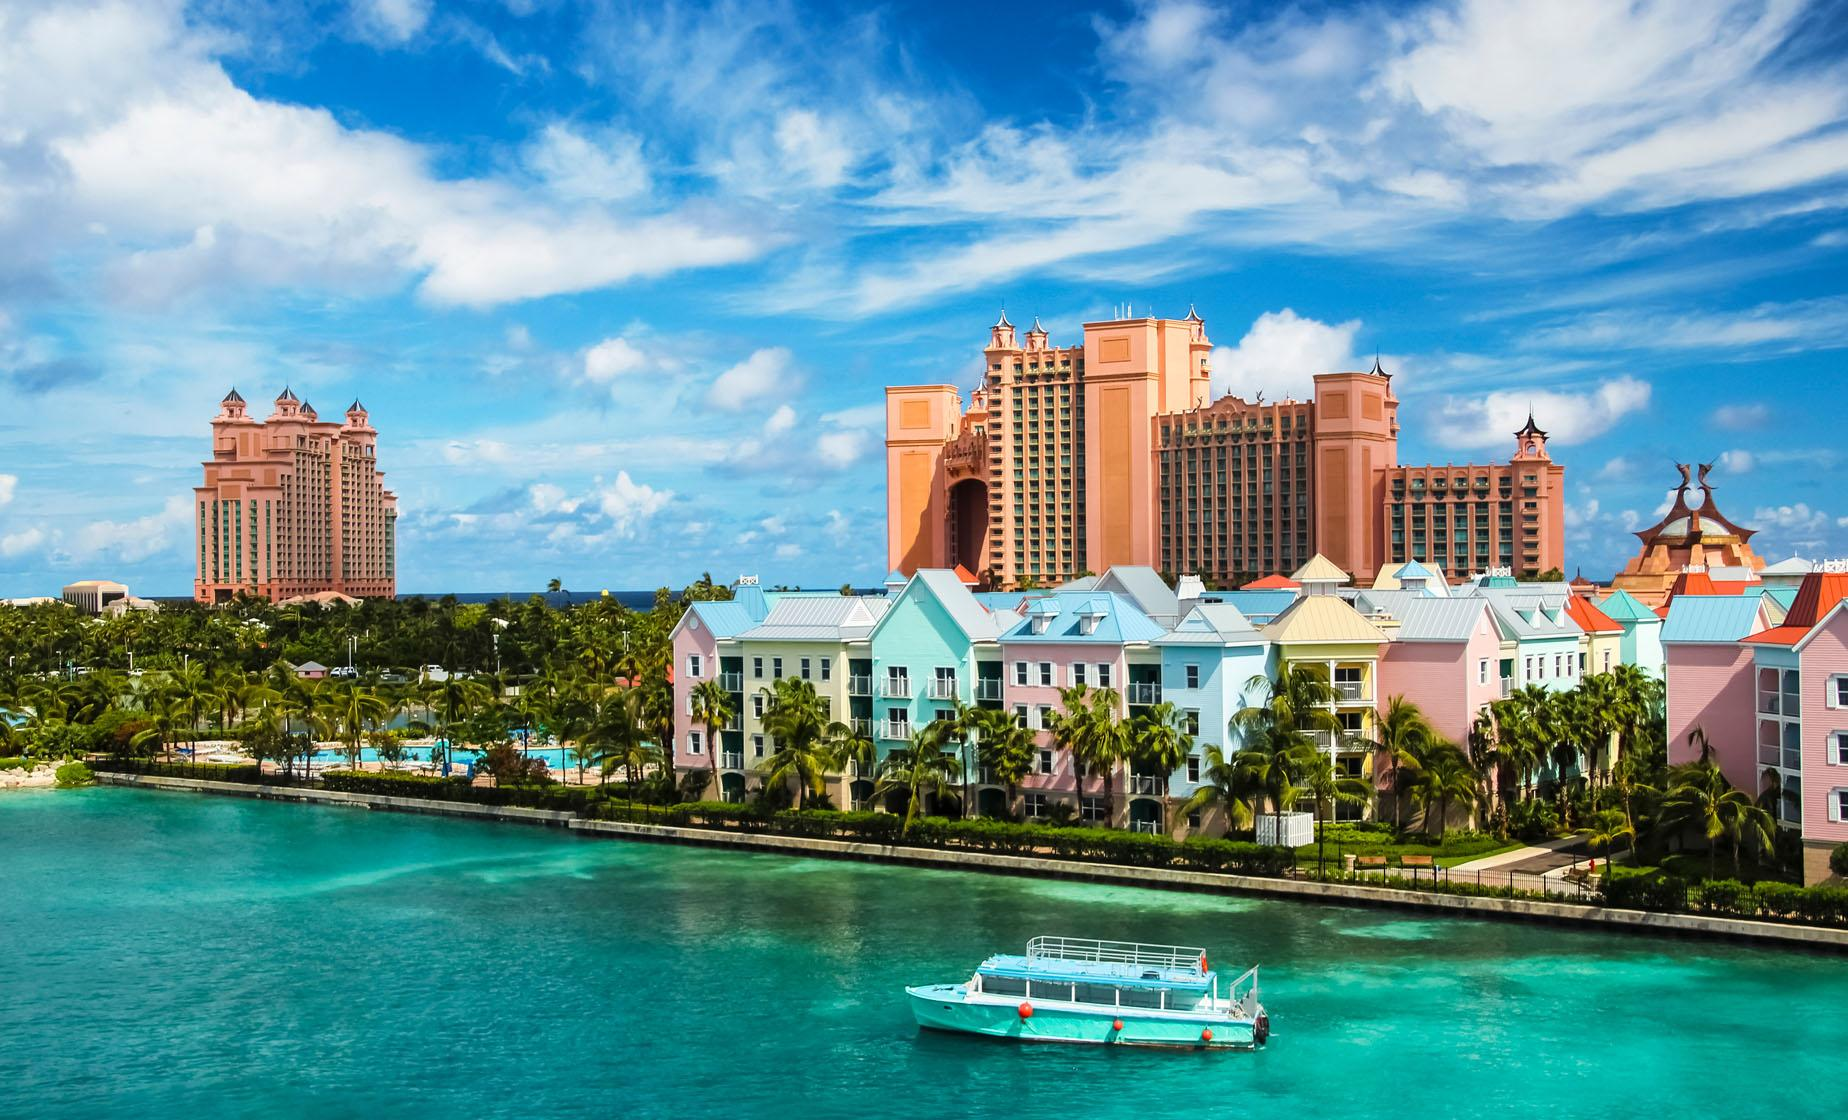 Best of Nassau Tour including Fort Montagu, The Cloisters, Potter's Cay Dock